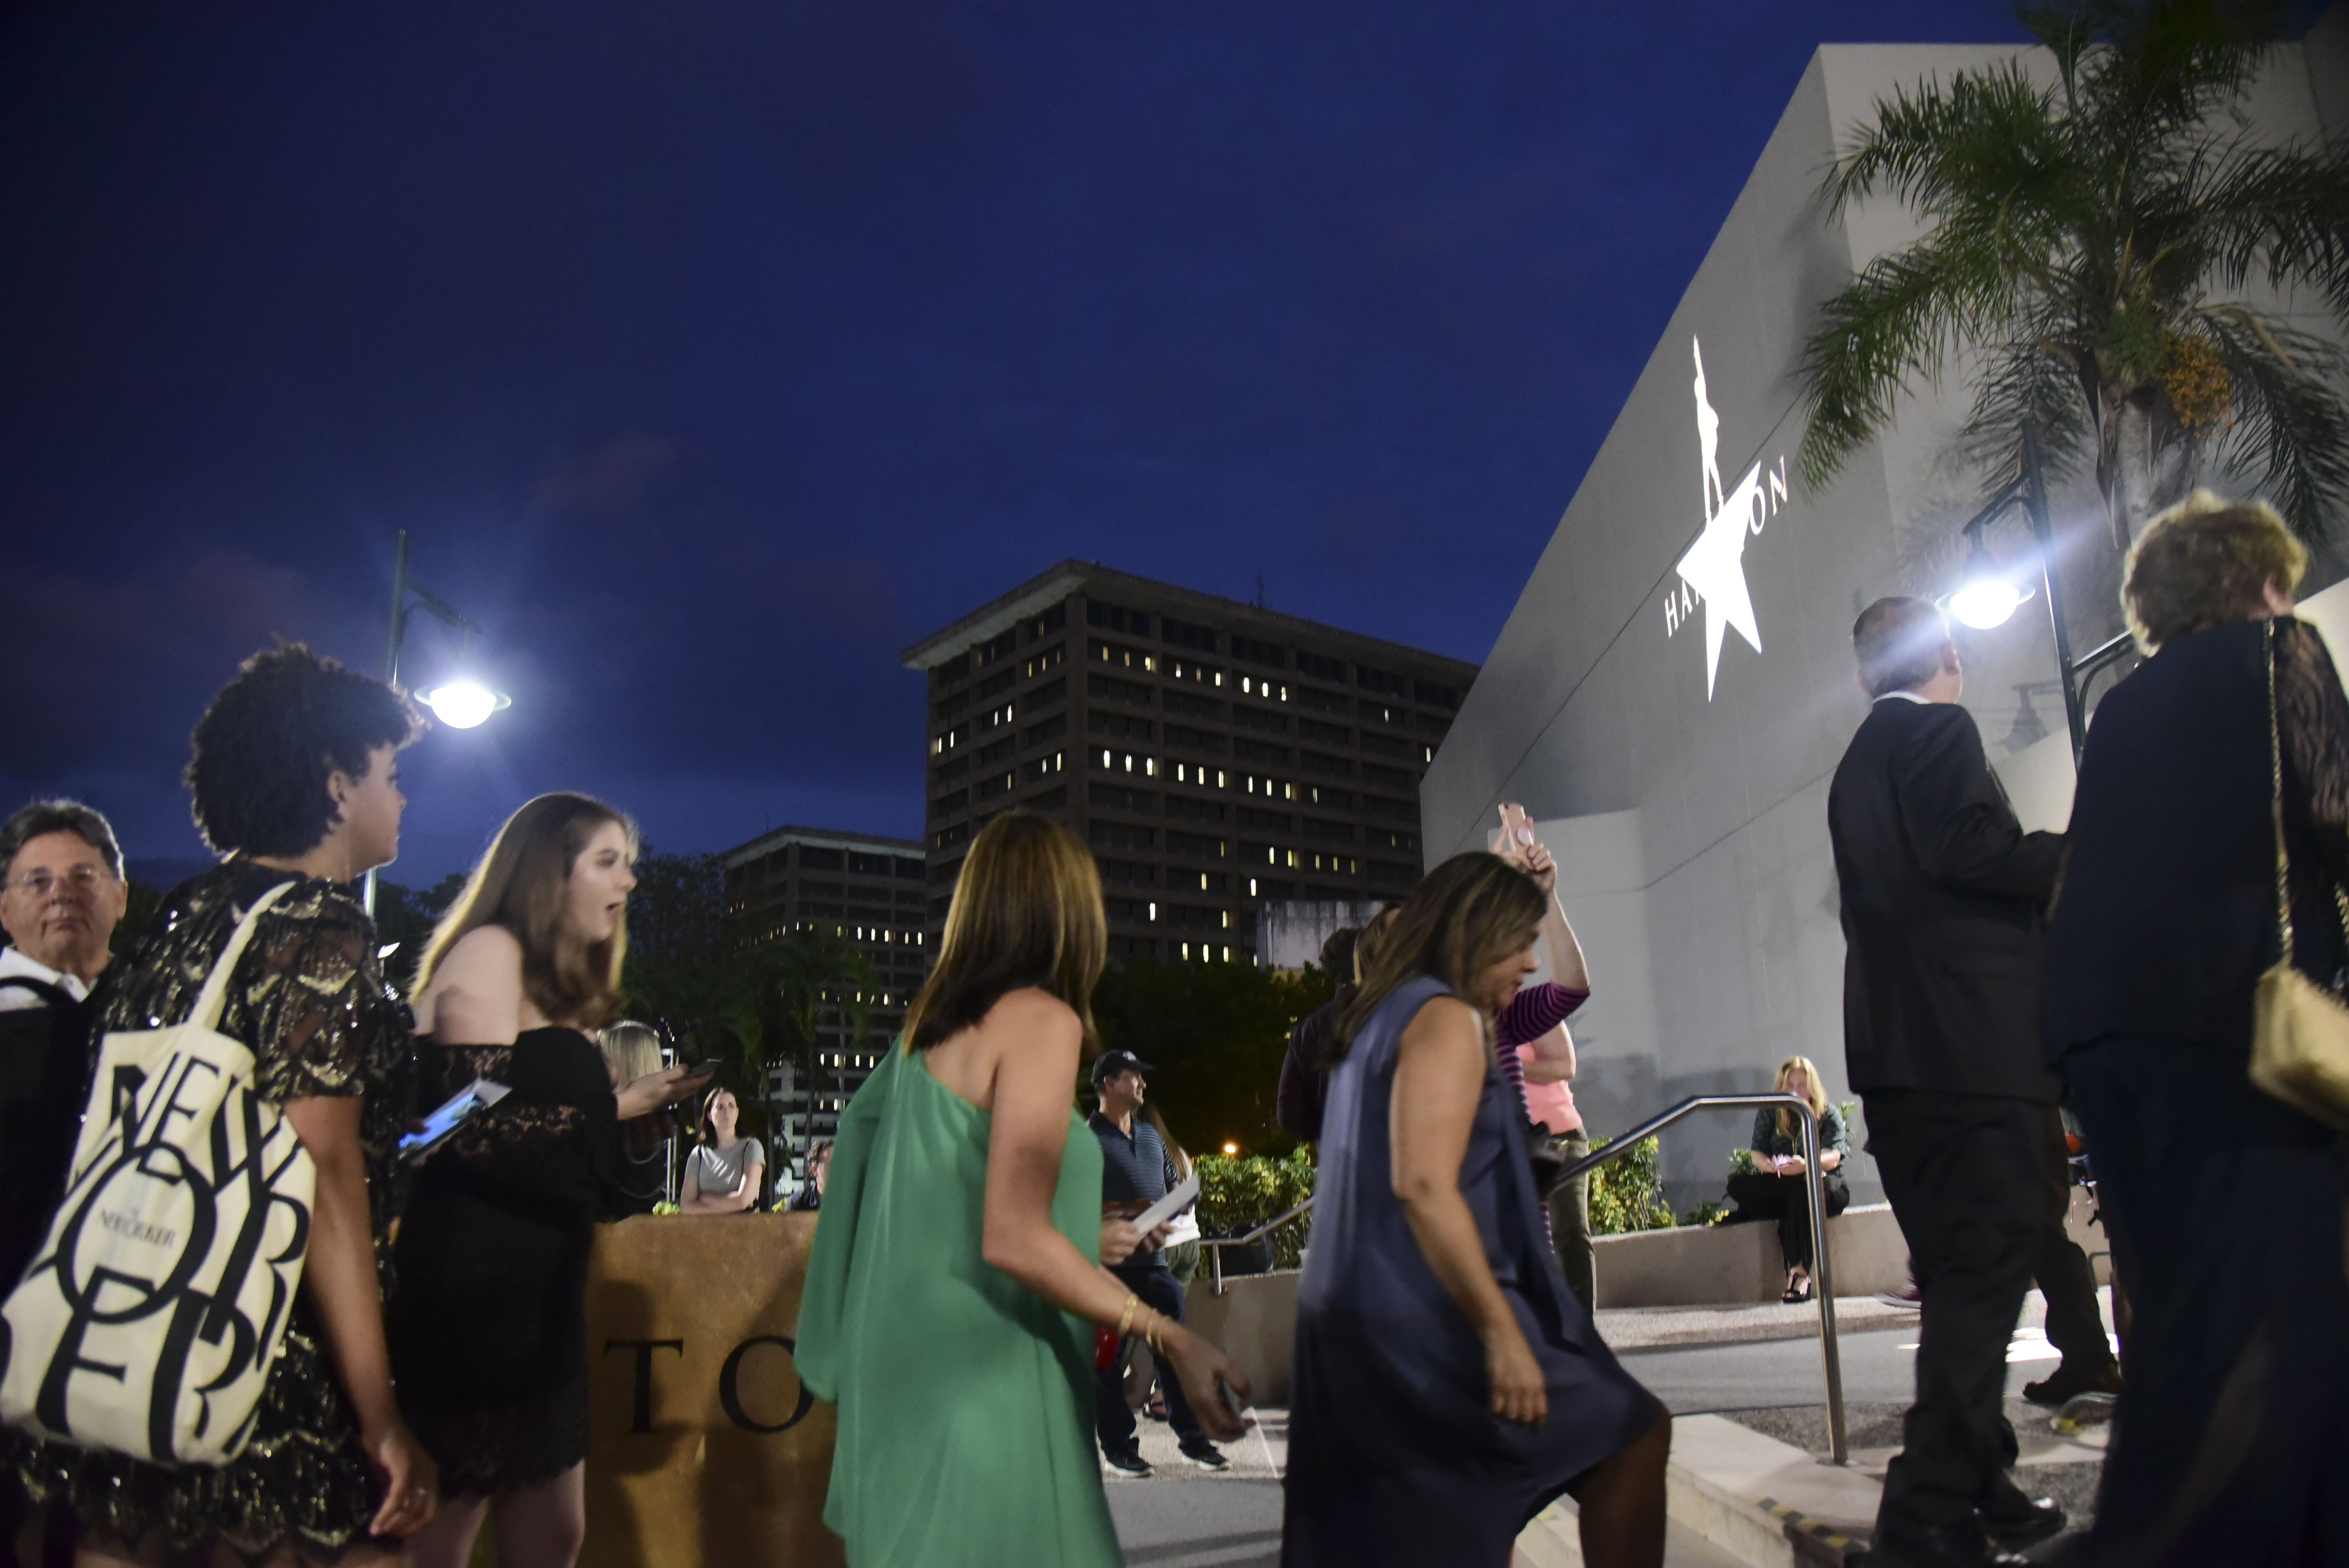 People line up in the entrance plaza of the Santurce Fine Arts Center moments before the premiere of the award-winning Broadway musical, Hamilton, starring its creator, New York native of Puerto Rican descent Lin-Manuel Miranda, in San Juan, Puerto Rico, Friday Jan. 11, 2019. The musical is set to run for two weeks and will raise money for local arts programs. (AP Photo/Carlos Giusti)